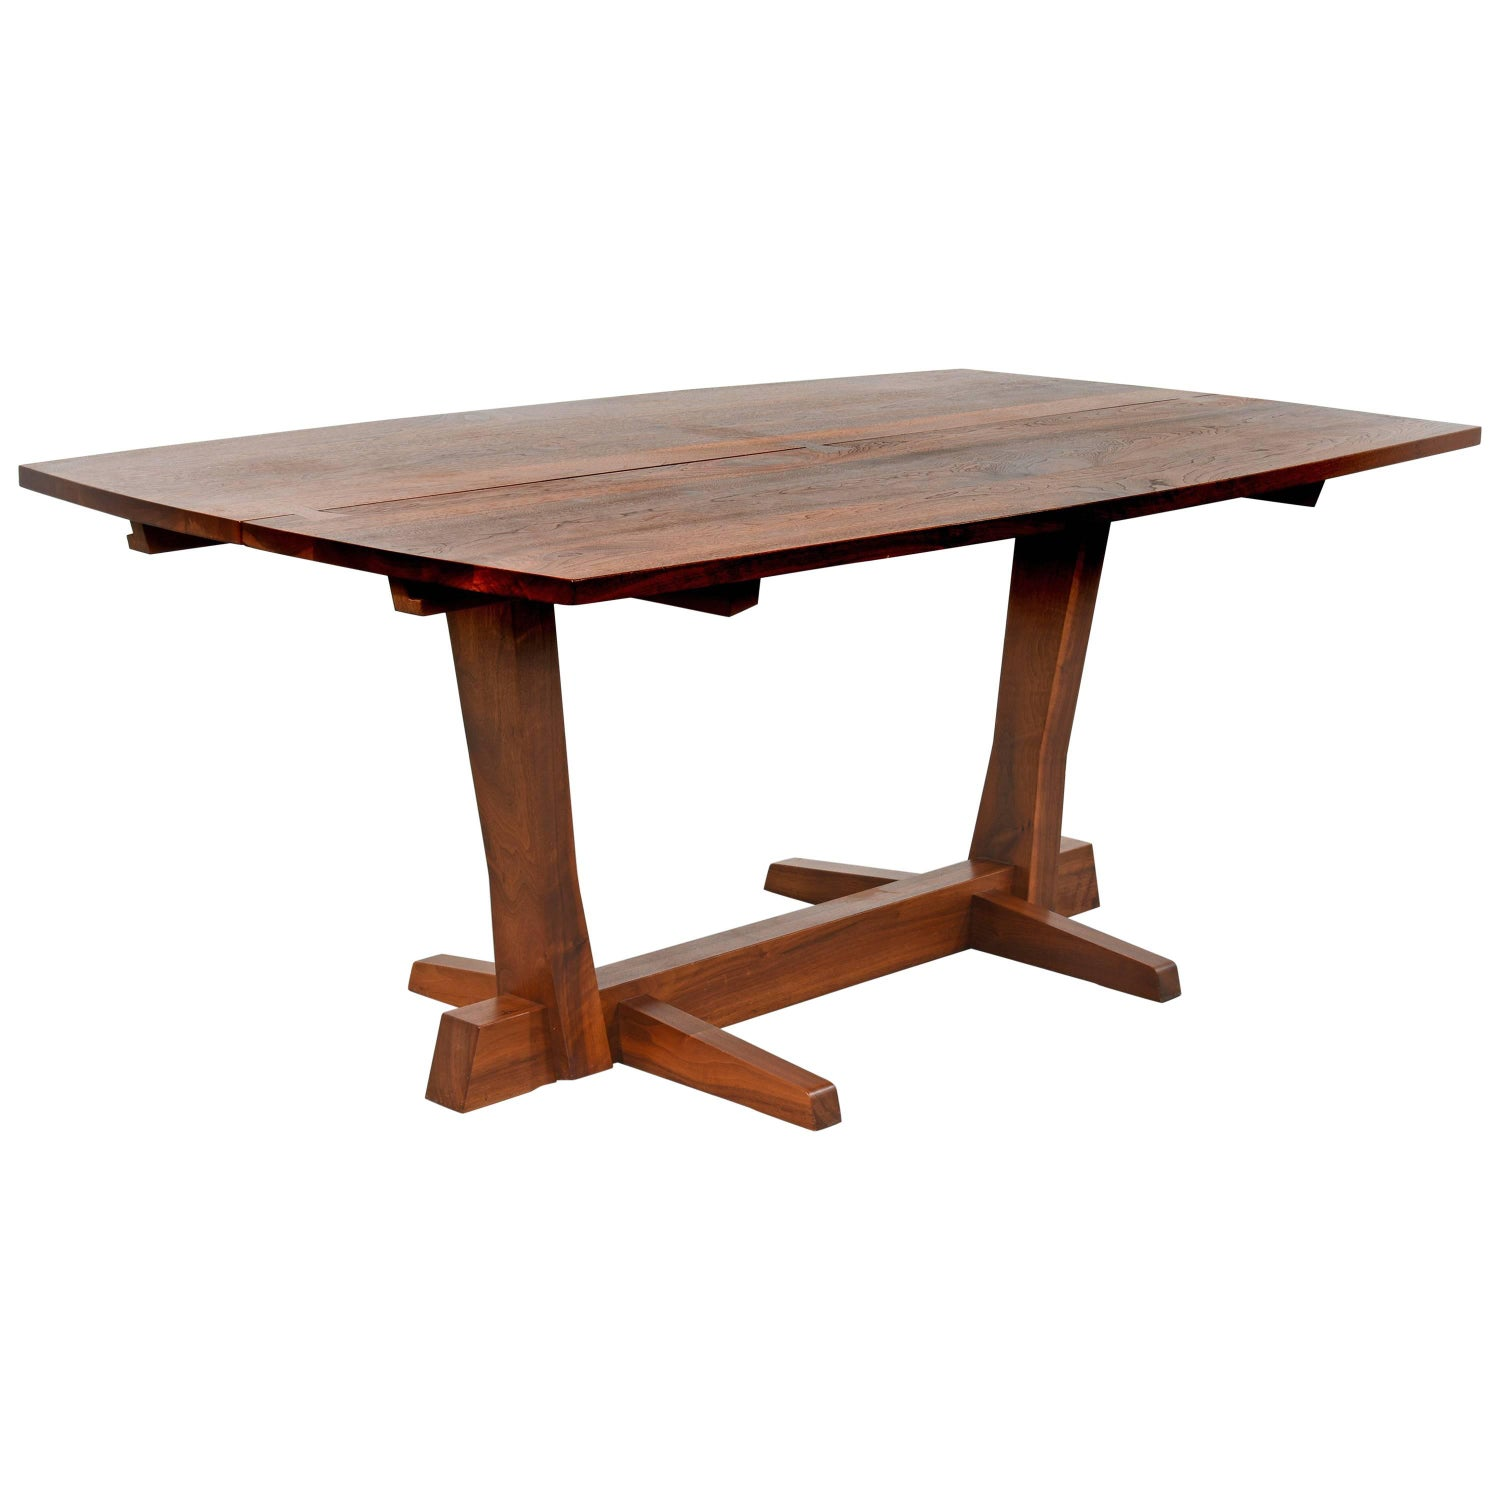 odd furniture pieces. Early George Nakashima Walnut Conoid Dining Table With Rosewood Keys, 1965 Odd Furniture Pieces E